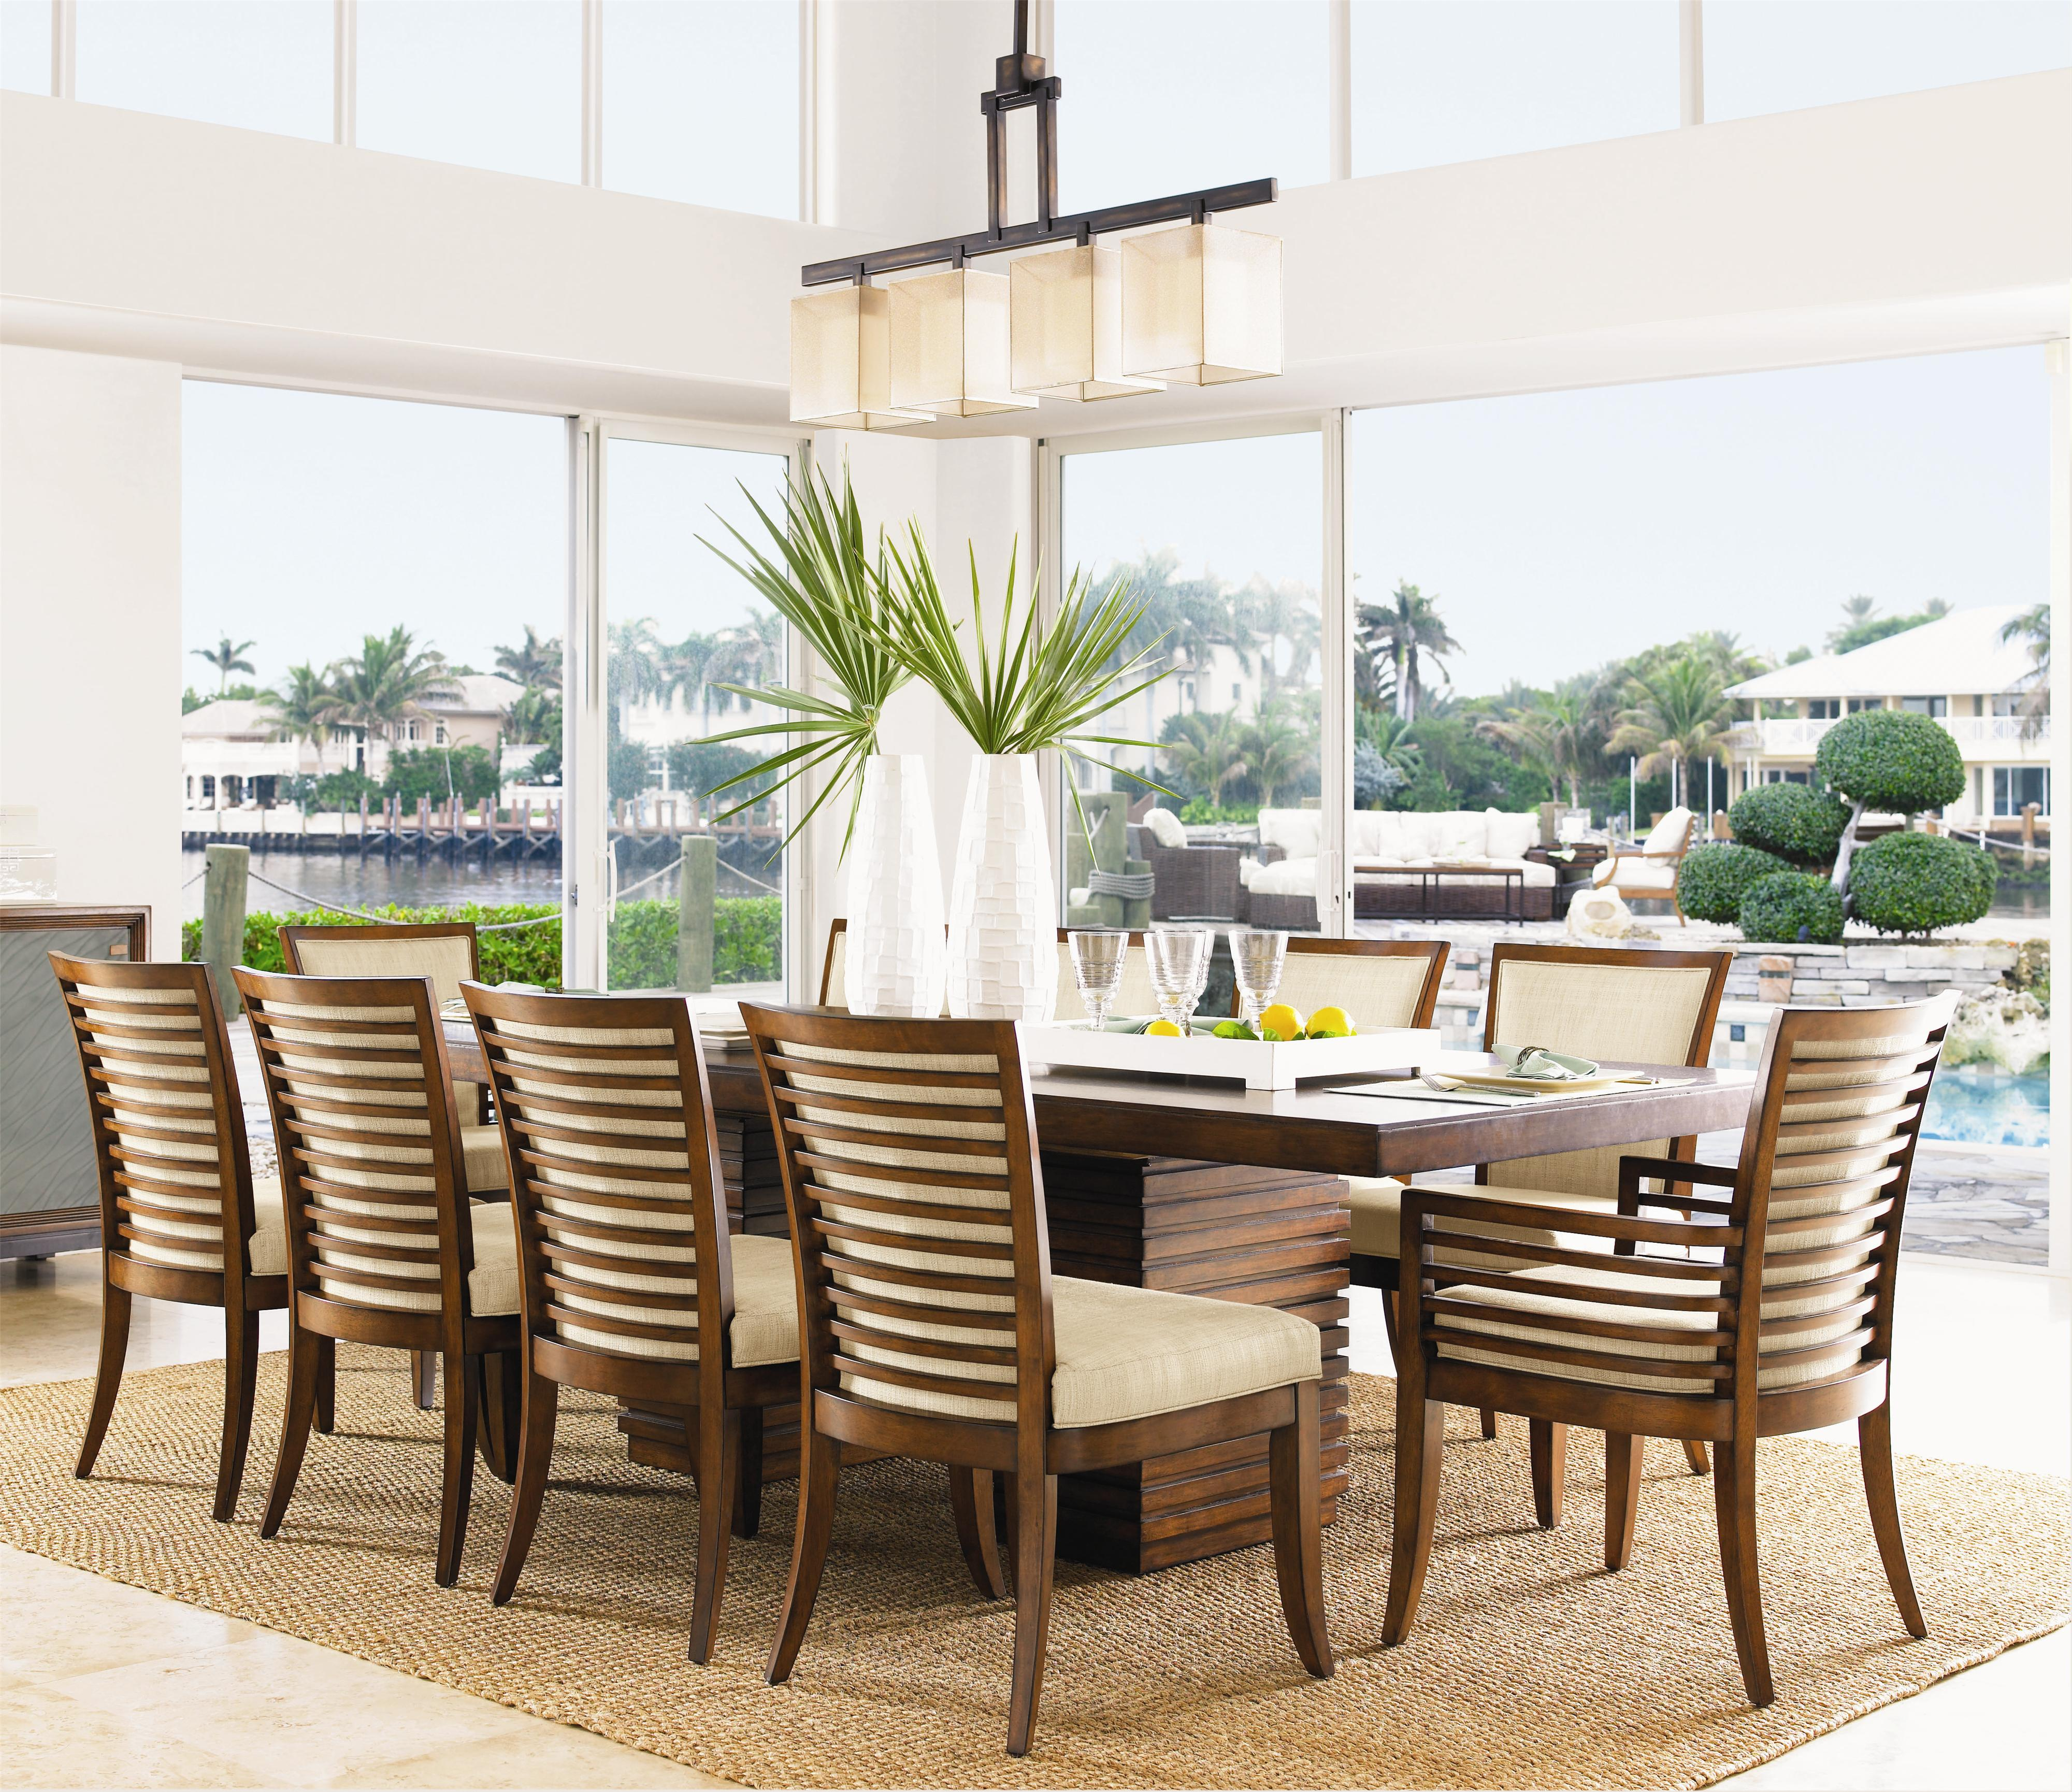 Tommy Bahama Dining Room Set Ocean Club 536 By Tommy Bahama Home Baer39s Furniture Tommy